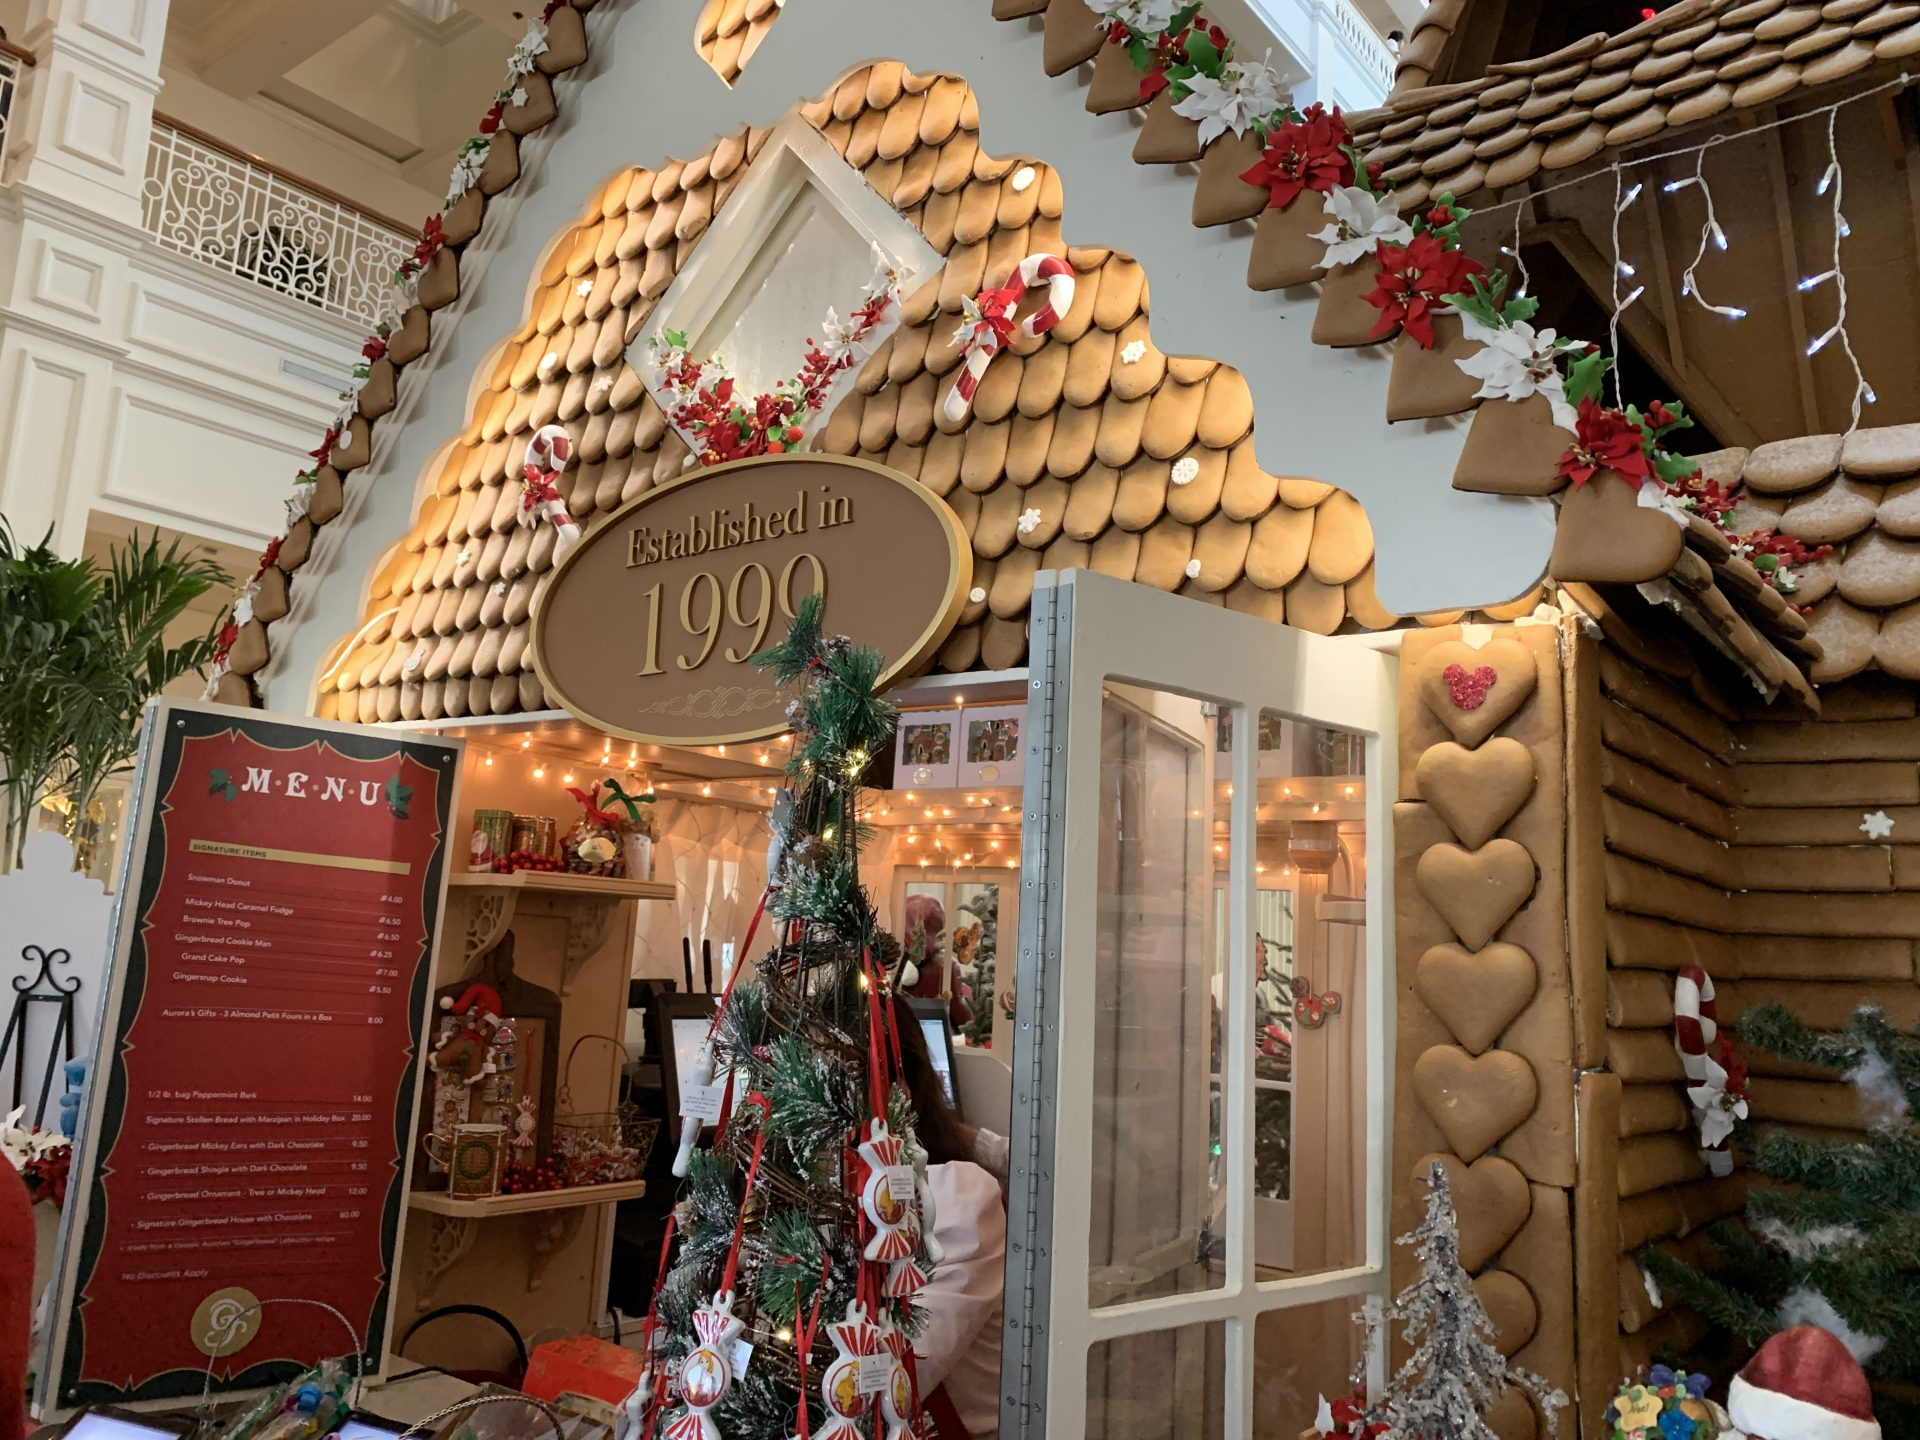 Read on for the best Walt Disney World Resort Christmas decorations. I shared my favorites from all over the resort, including the parks, hotels and more!